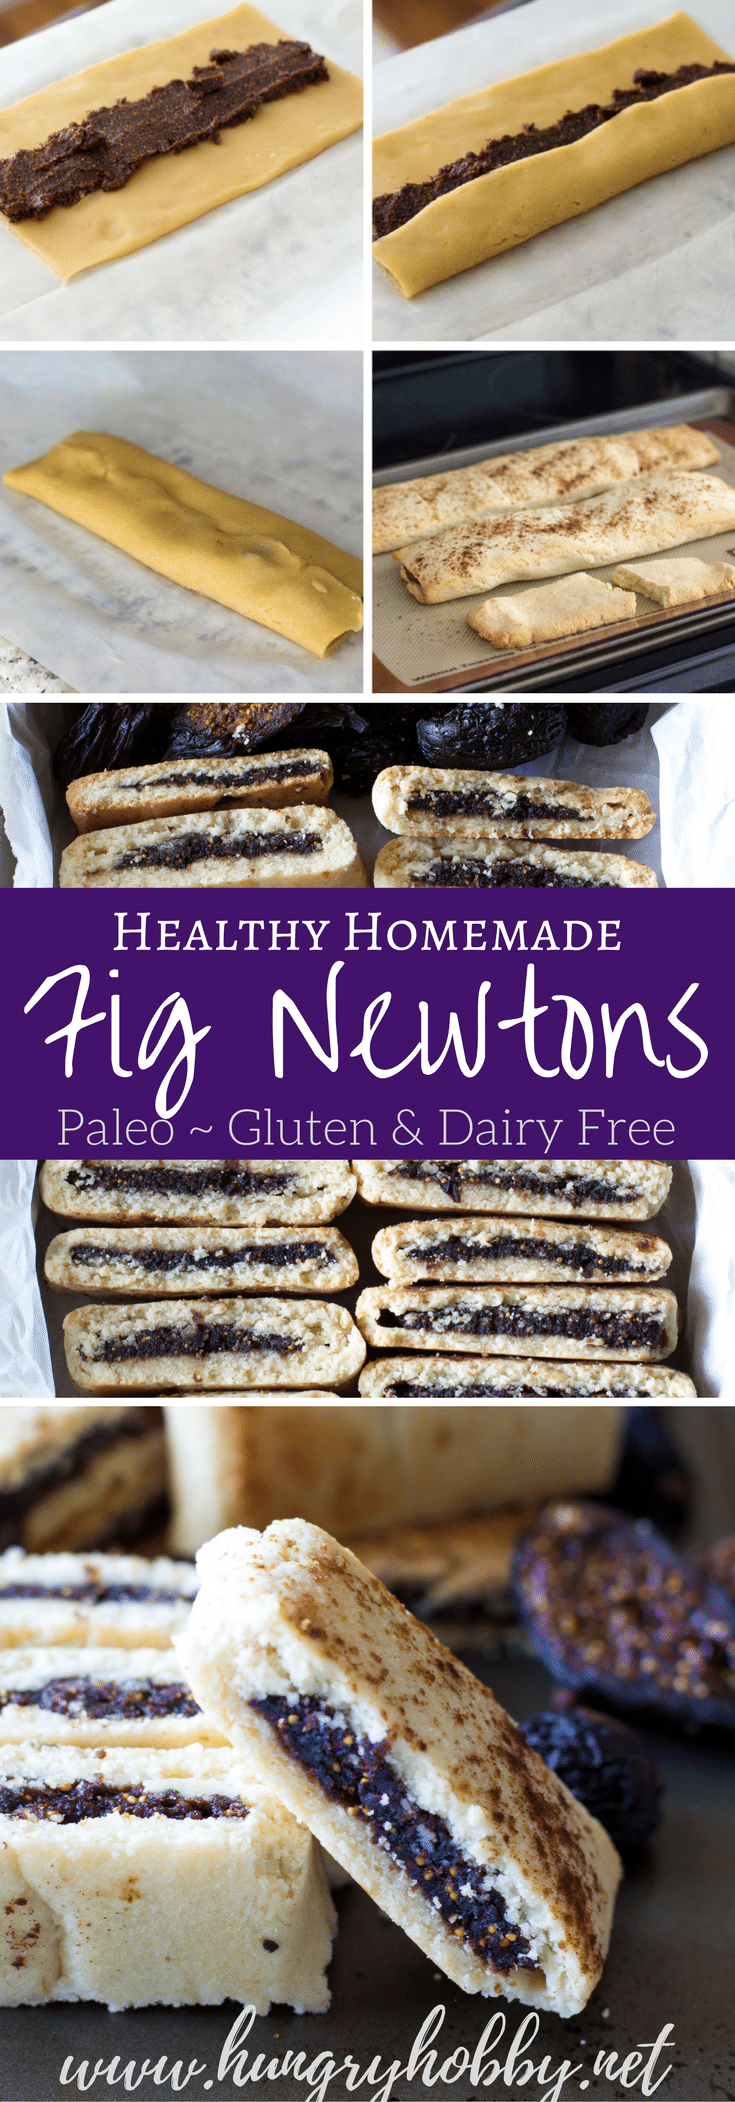 You have to make these healthy homemade versions of fig newton cookies that sweet, soft, and chewy! No preservatives, refined flour or sugar! Paleo Friendly!